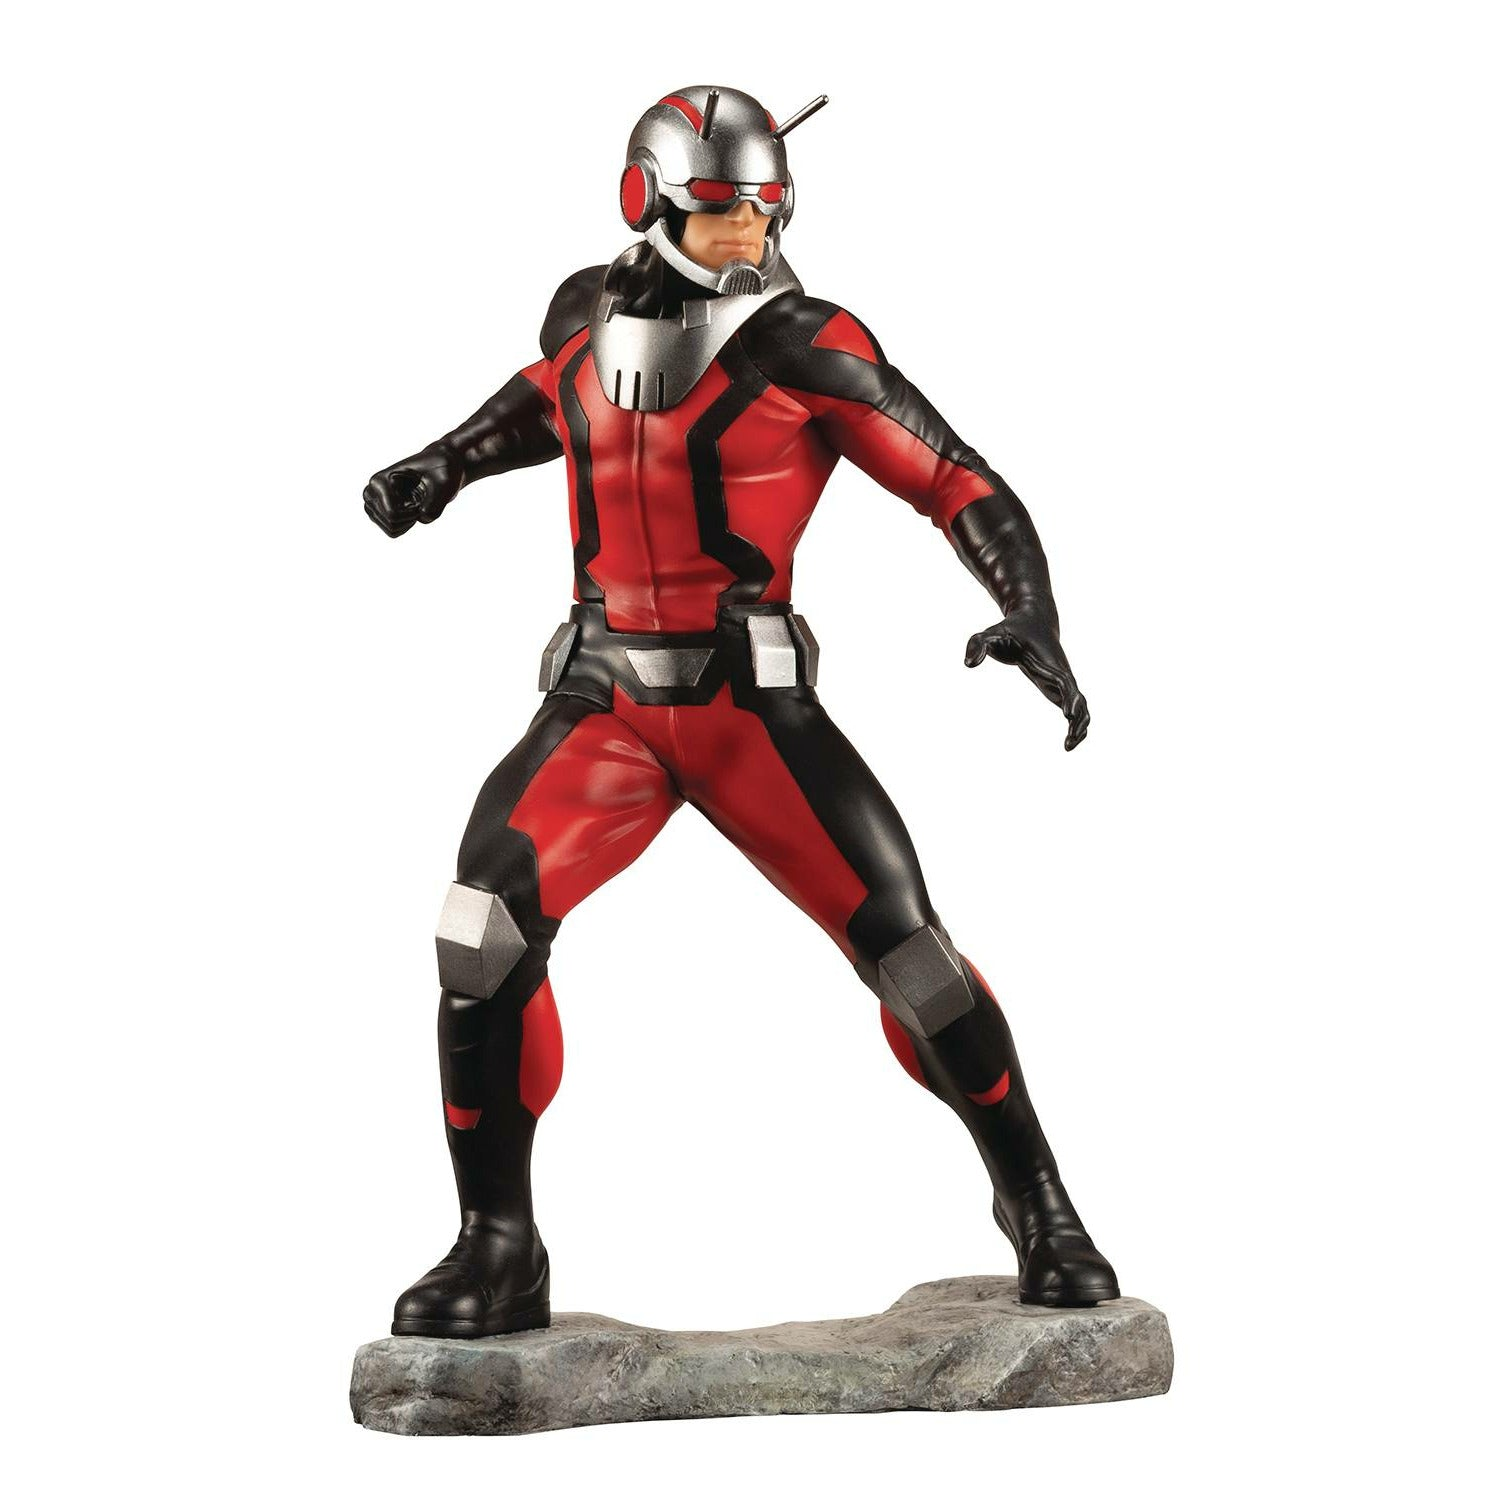 Marvel Ant-man & The Wasp Artfx+ Statue